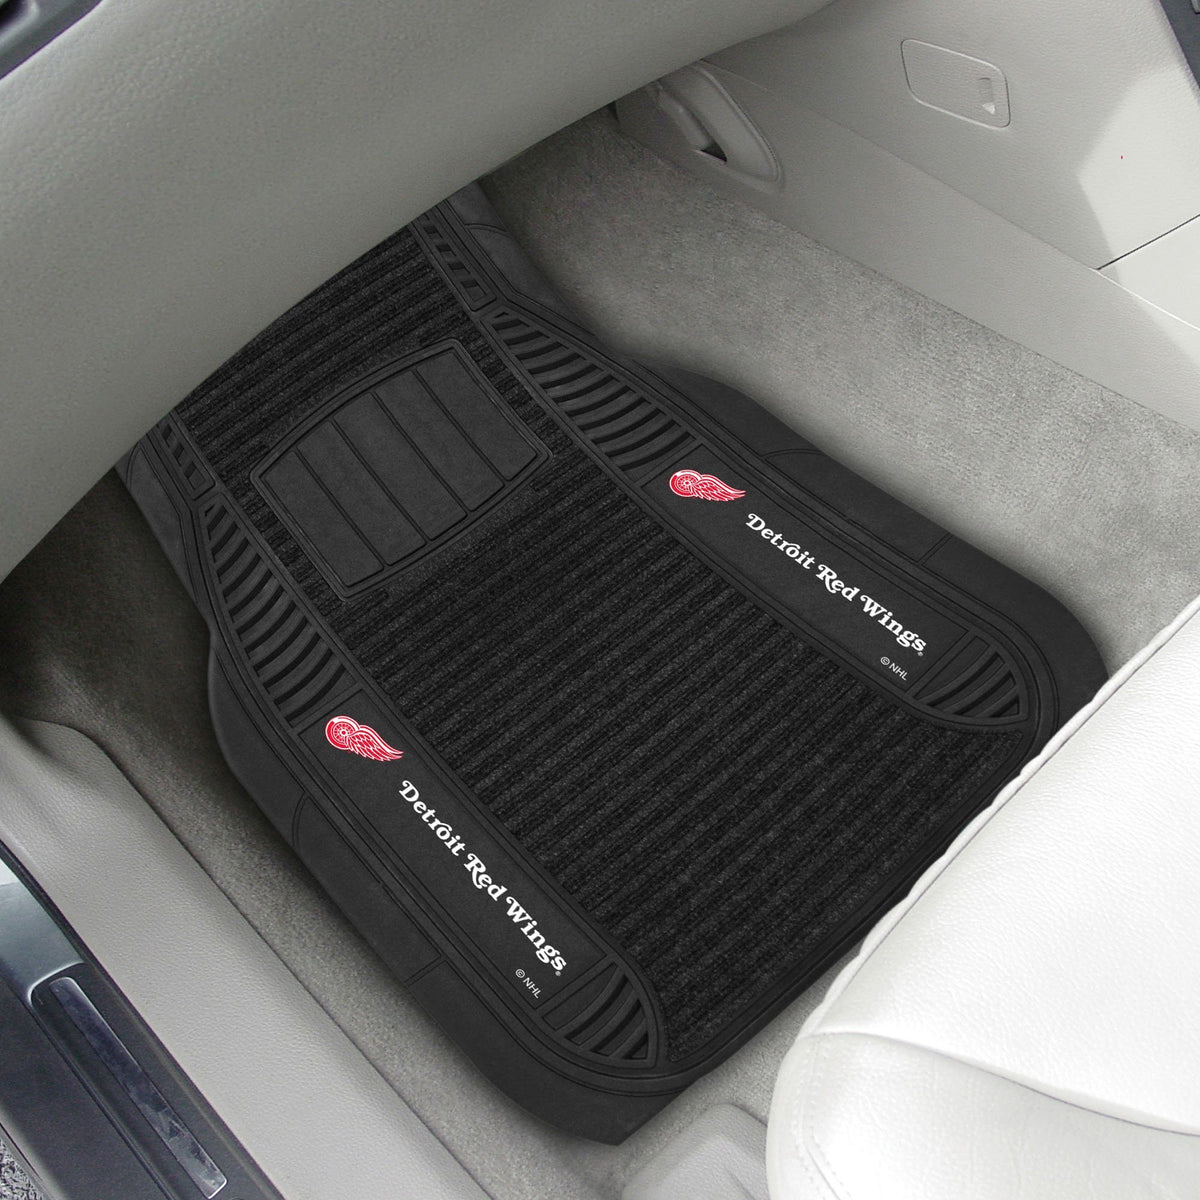 NHL - Deluxe Car Mat, 2-Piece Set NHL Mats, Front Car Mats, 2-pc Deluxe Car Mat Set, NHL, Auto Fan Mats Detroit Red Wings